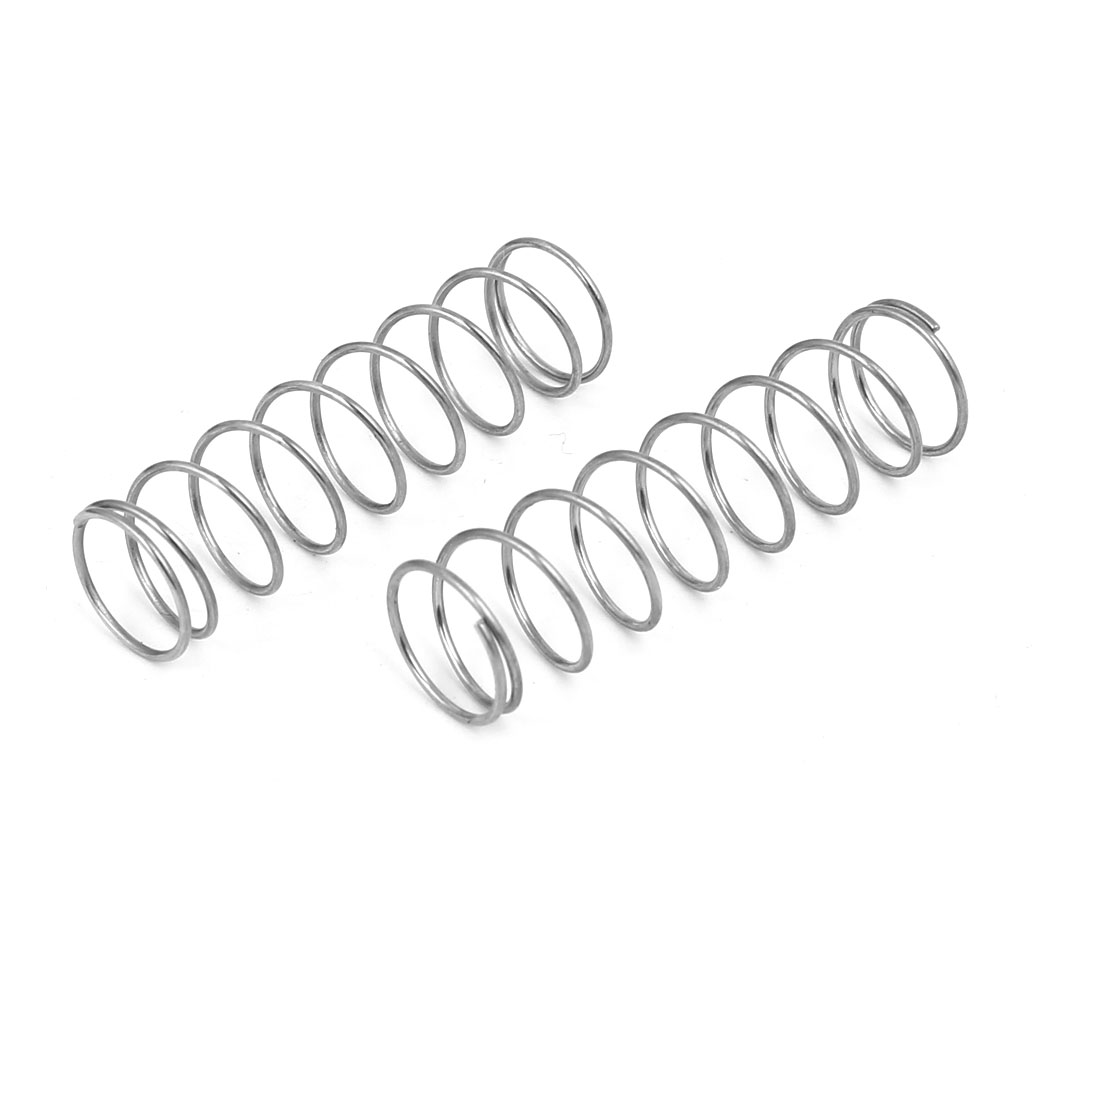 0.8mmx12mmx45mm 304 Stainless Steel Compression Springs 10pcs - image 2 of 3